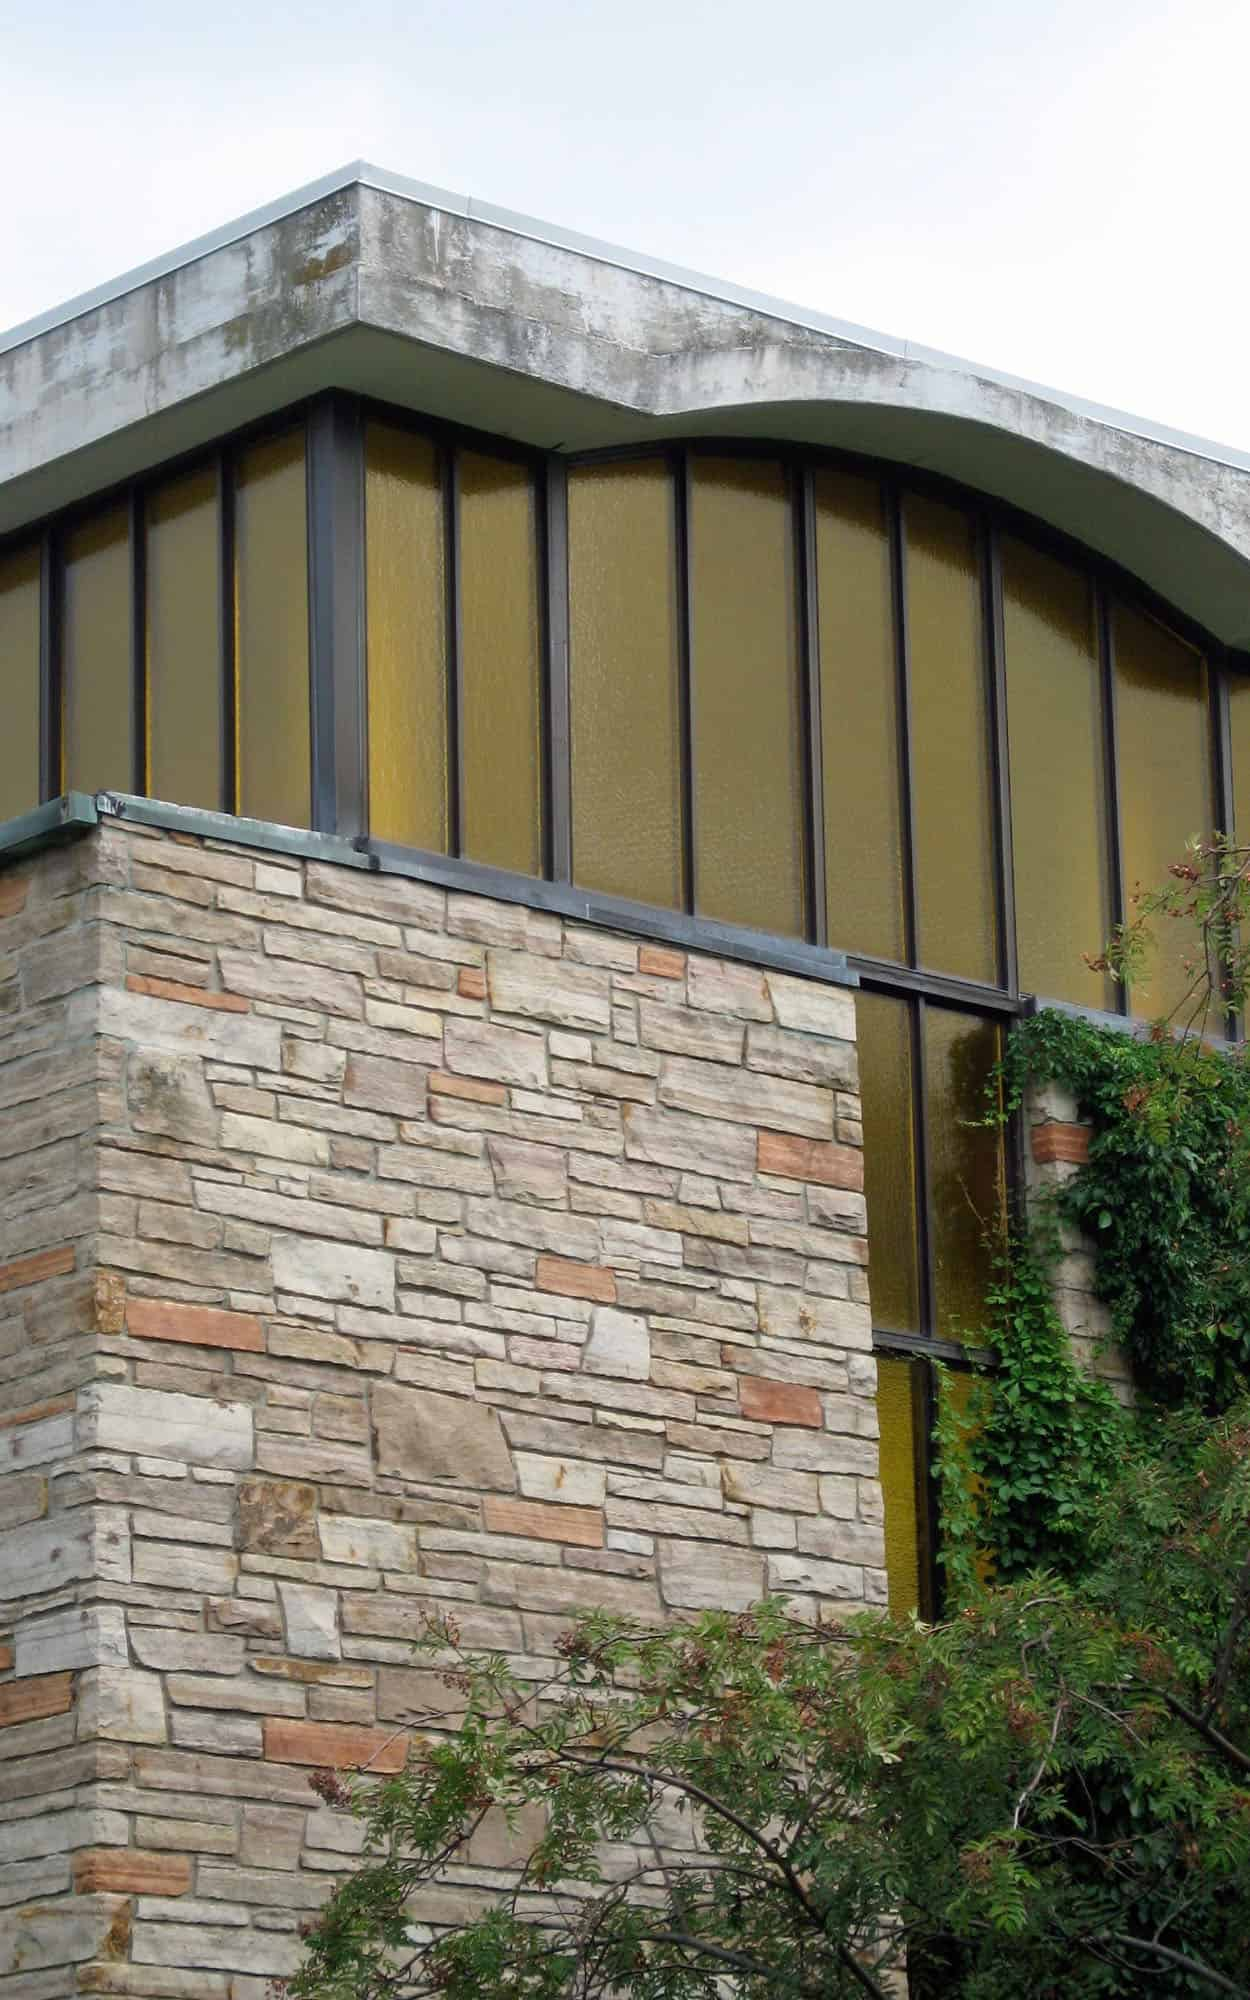 Corner detail of the chapel with its floating concrete roof amber clerestory windows and quarry faced sandstone walls